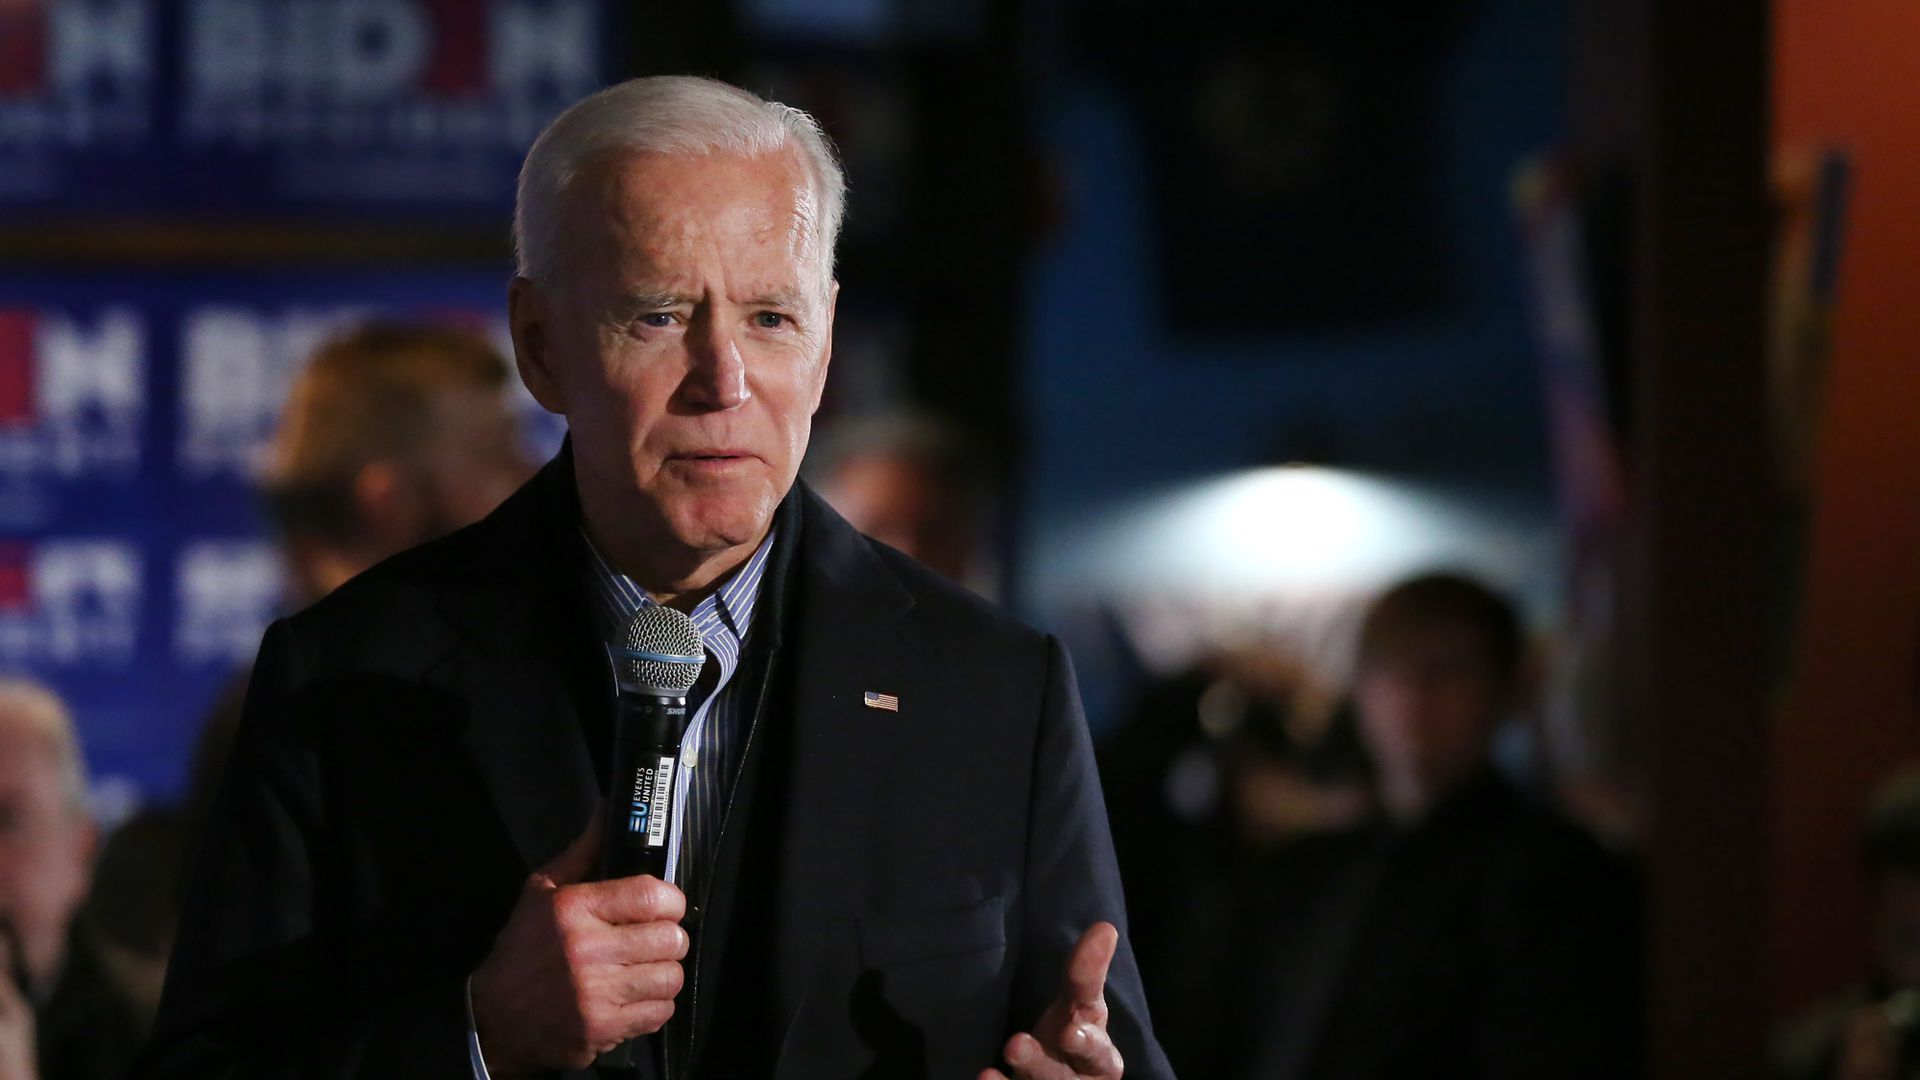 Former Vice President Joe Biden at a presidential campaign stop